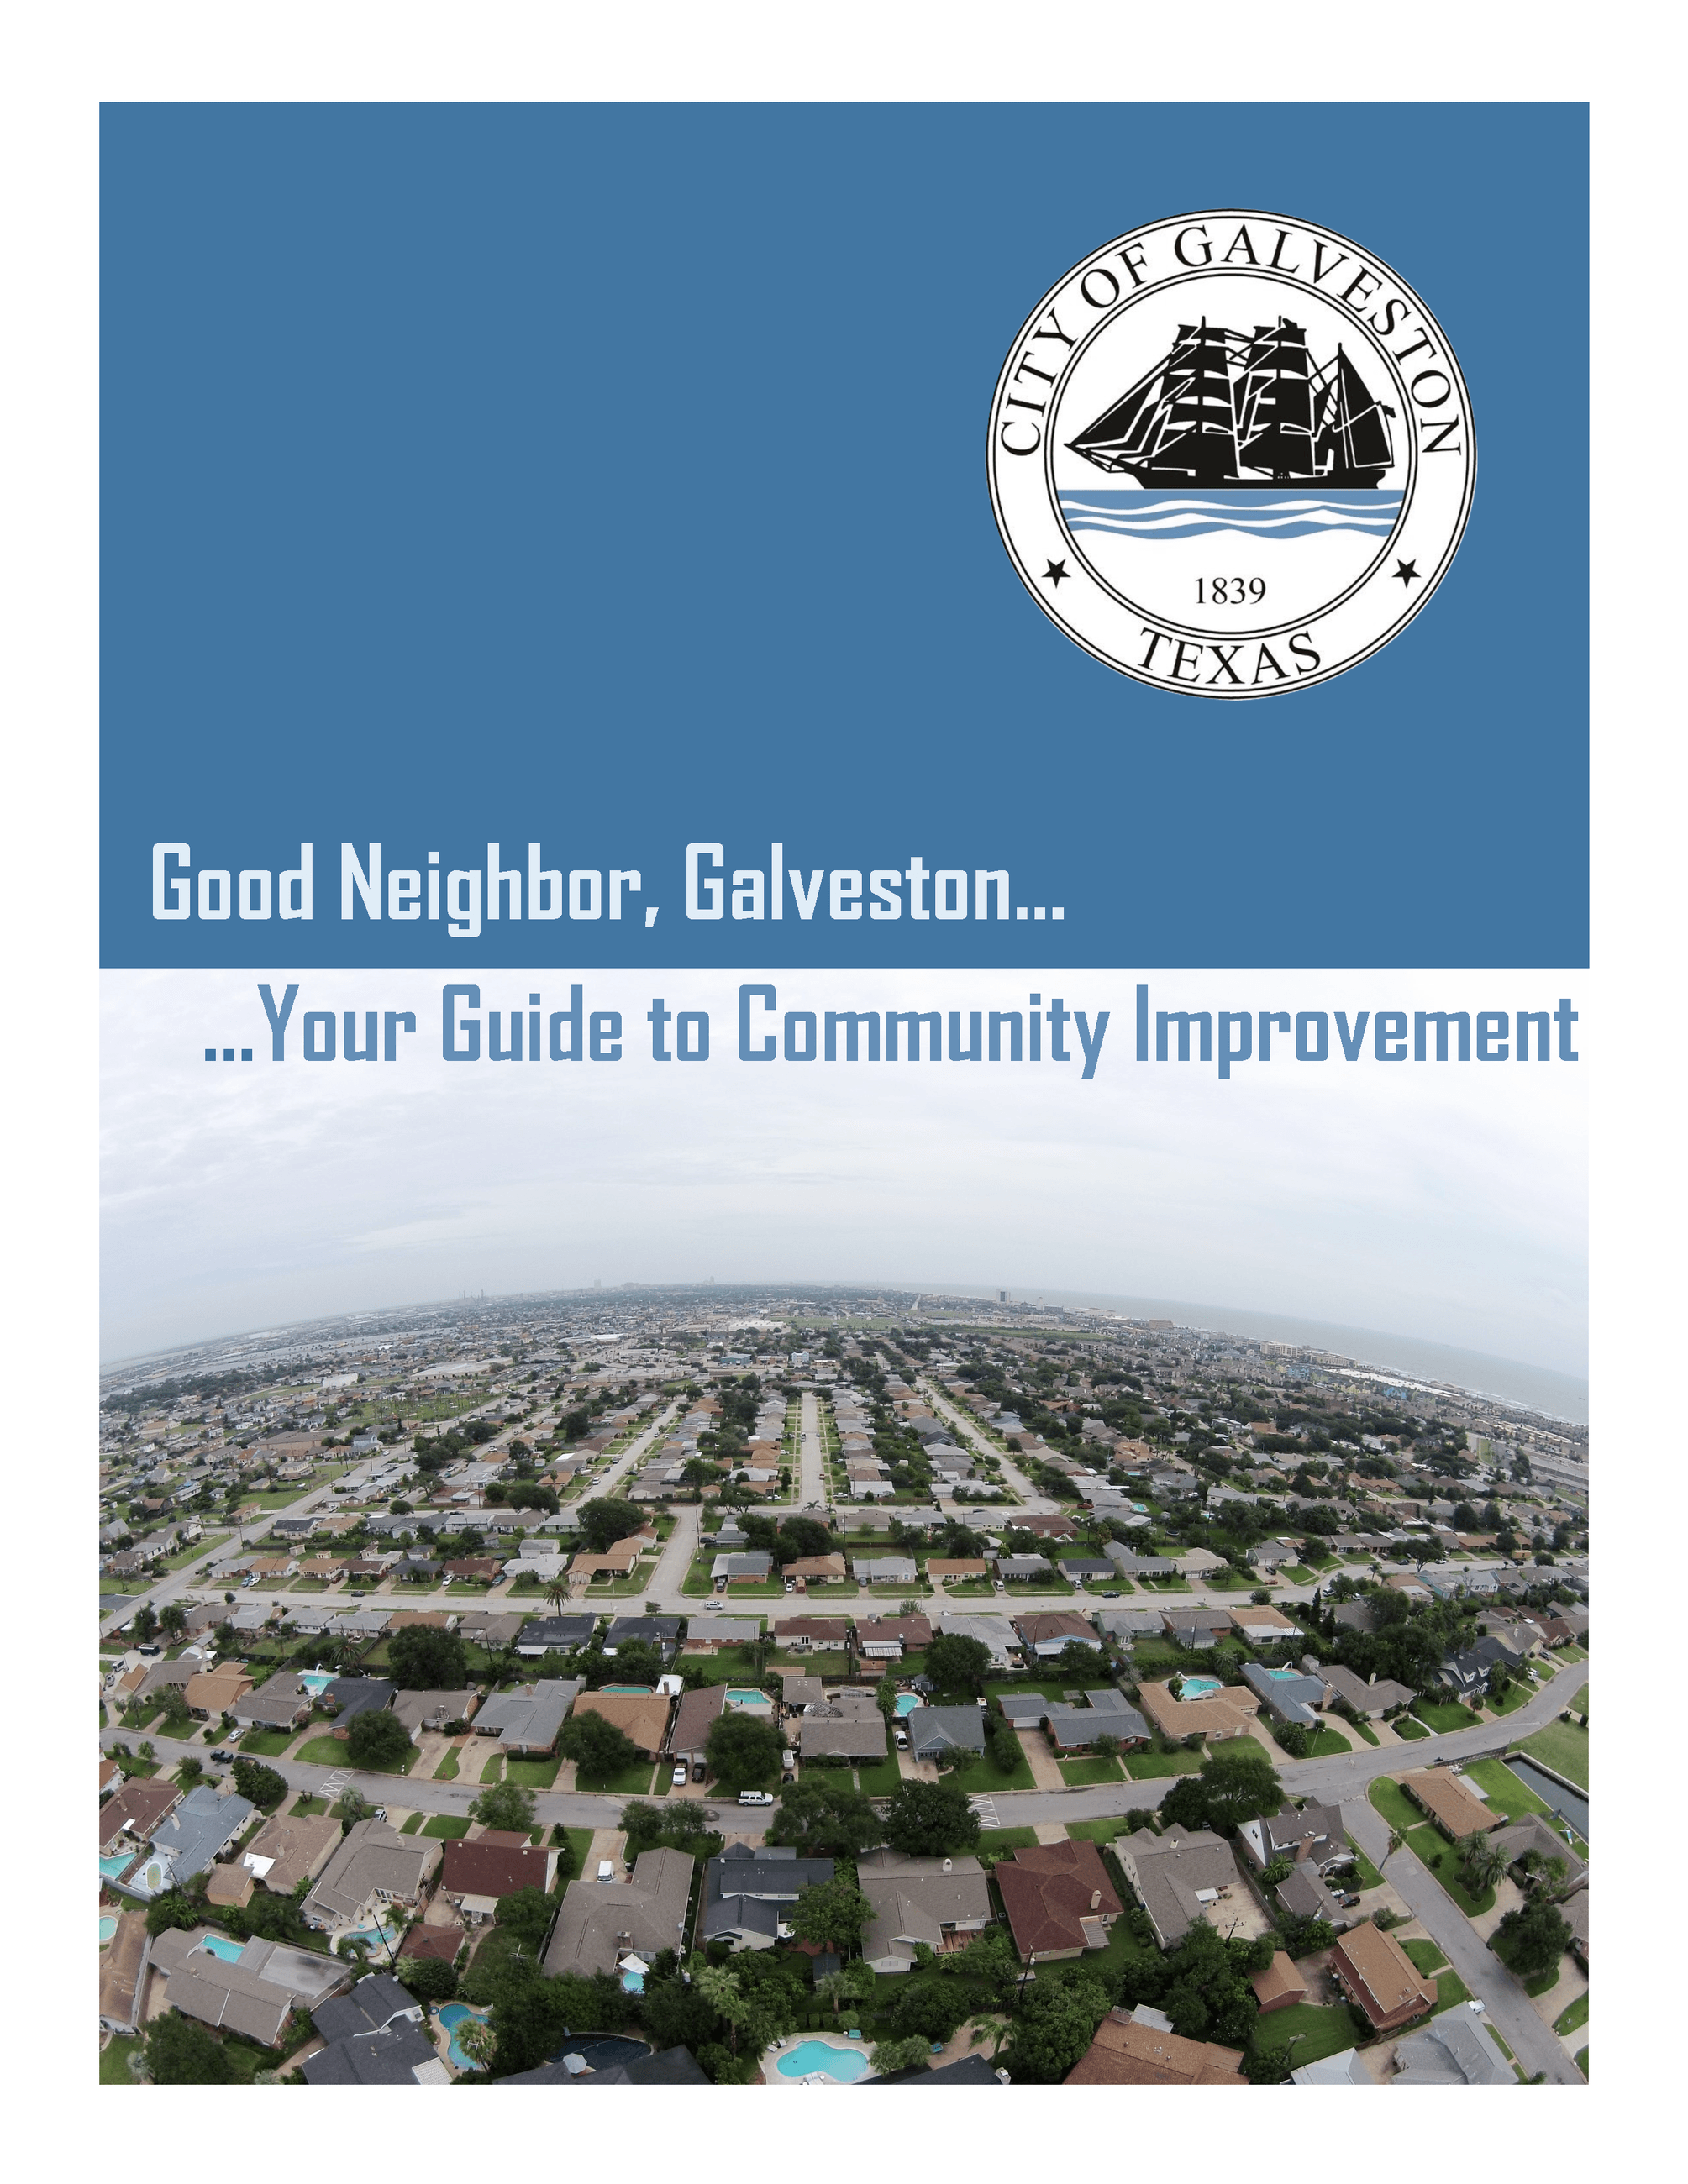 Good Neighbor Galveston Guidebook - click here for a quick code reference for private property maint